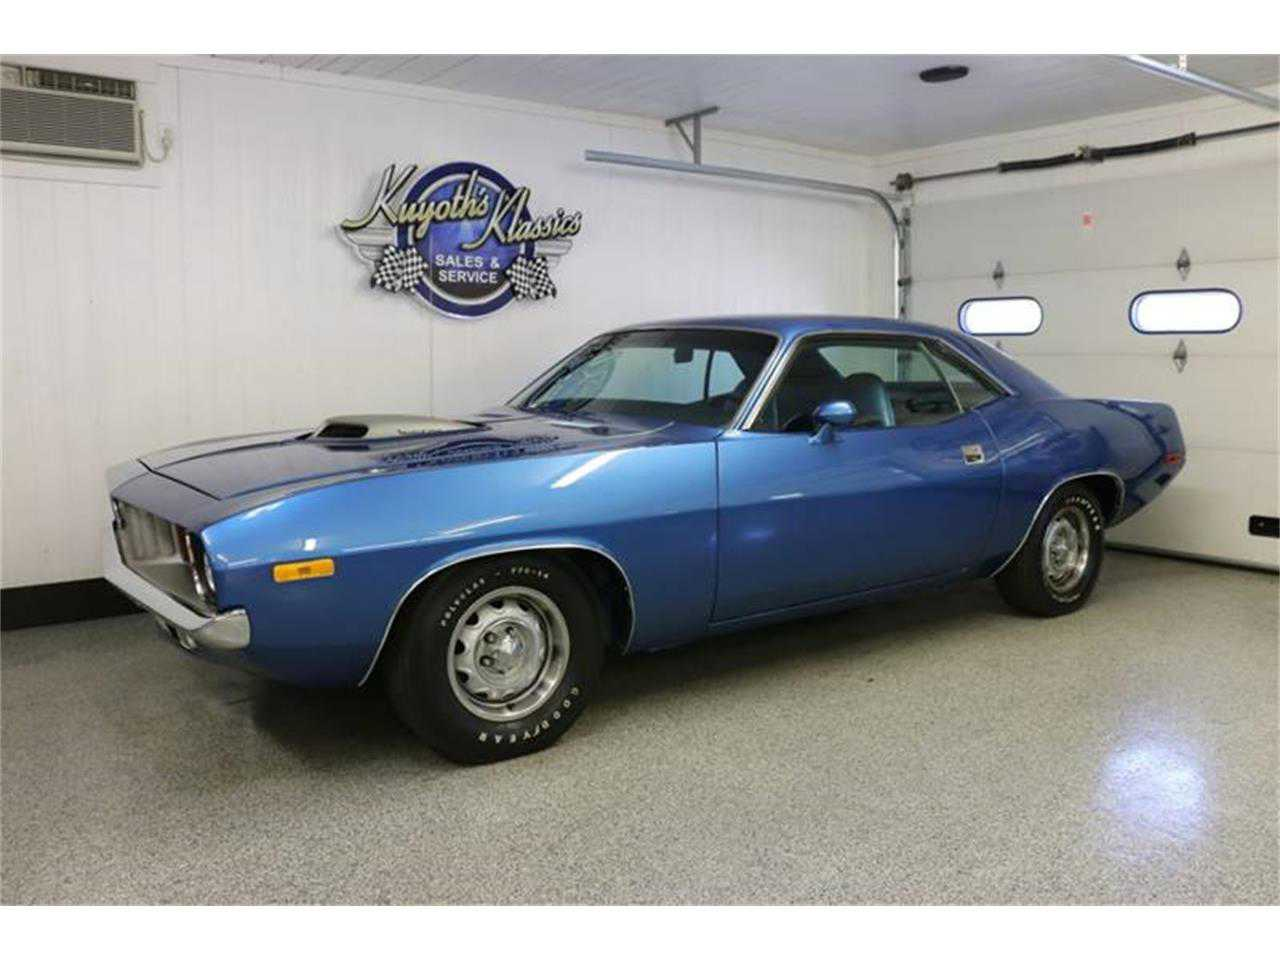 Plymouth For Sale In Vestal Ny 1973 Satellite Station Wagon Barracuda